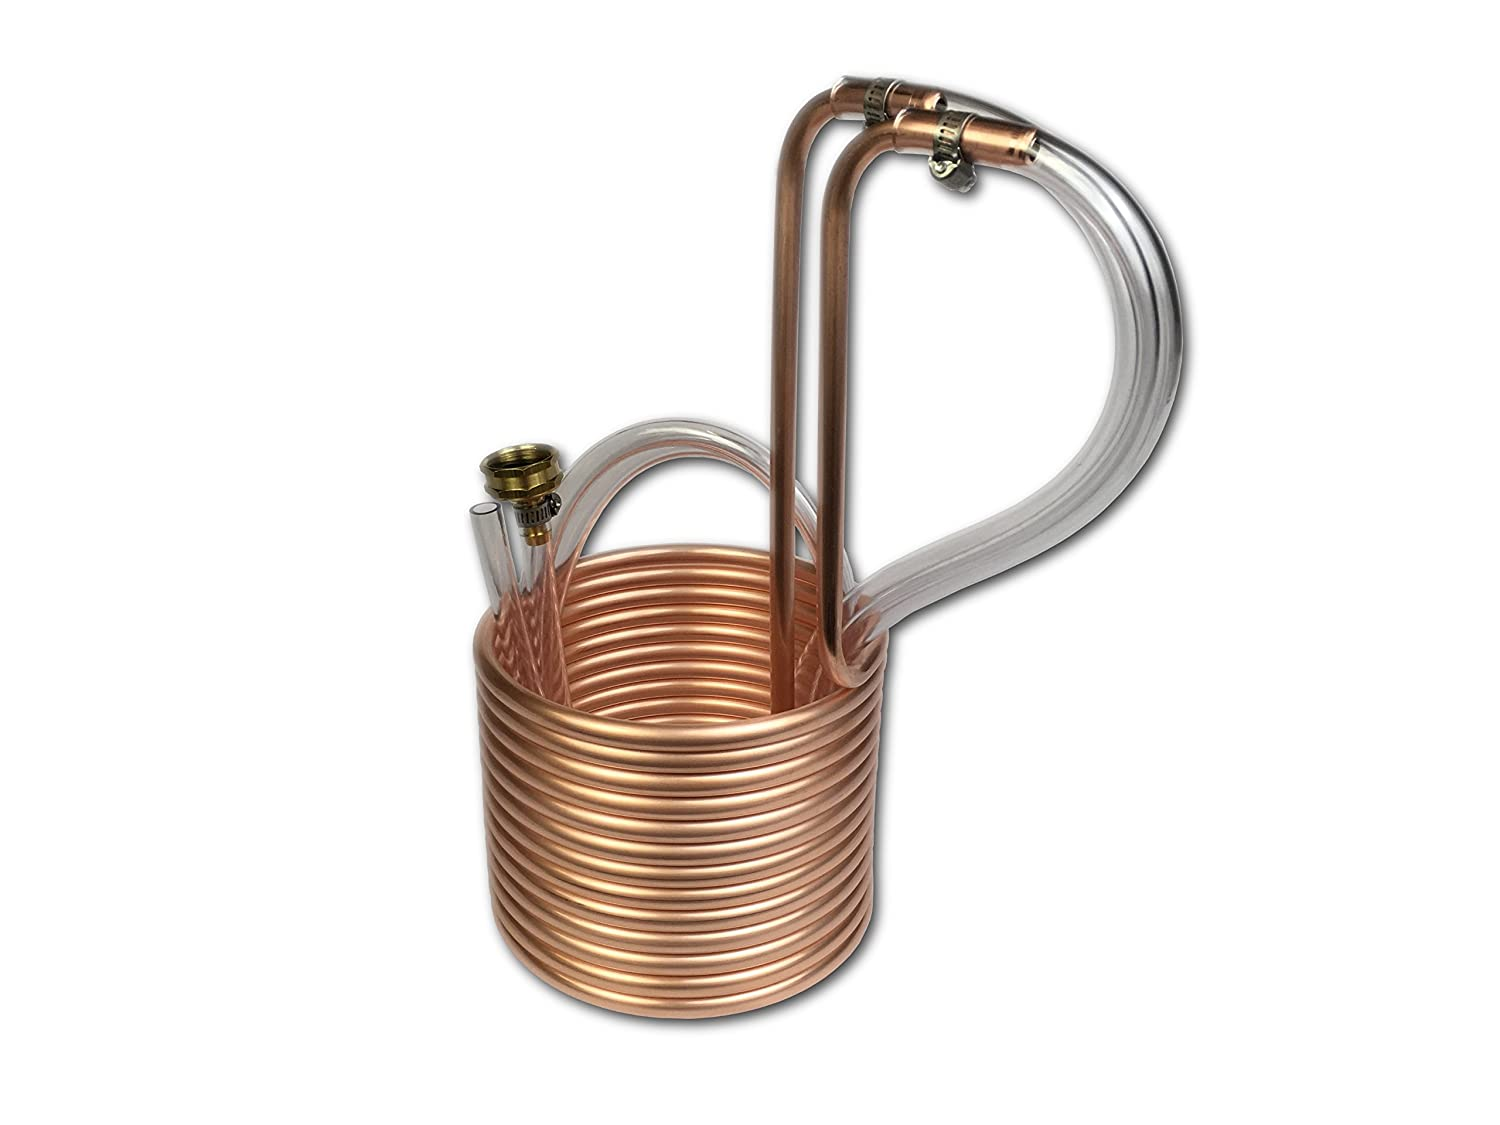 "COLDBREAK 25' Wort Chiller, 3/8"", 100% Pure USA Copper, 4' Vinyl Tubing, Heavy-Duty Garden Hose Fitting"